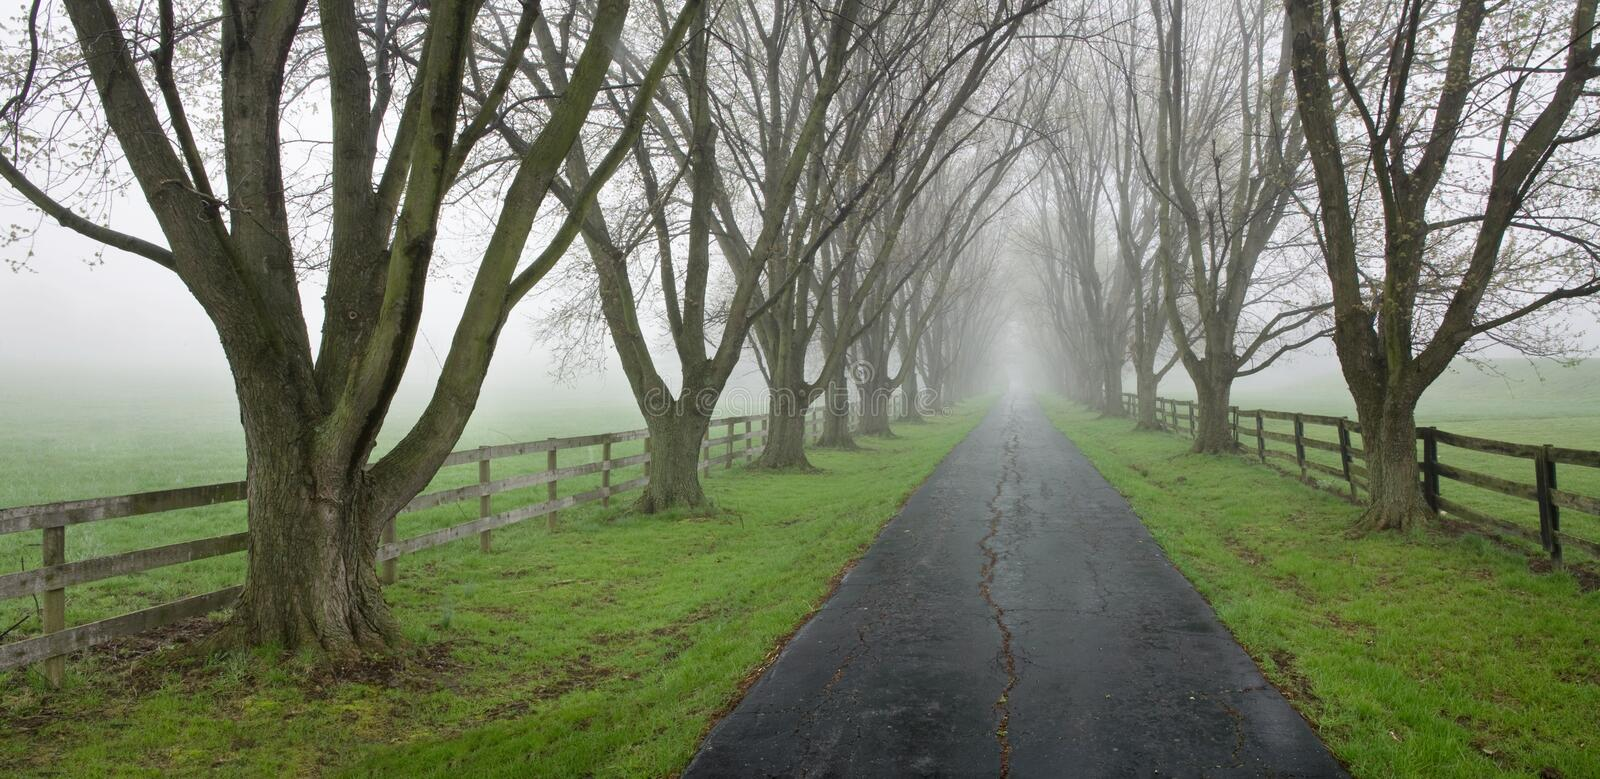 Download Tree Lined Country Lane stock image. Image of mist, scenic - 15297597